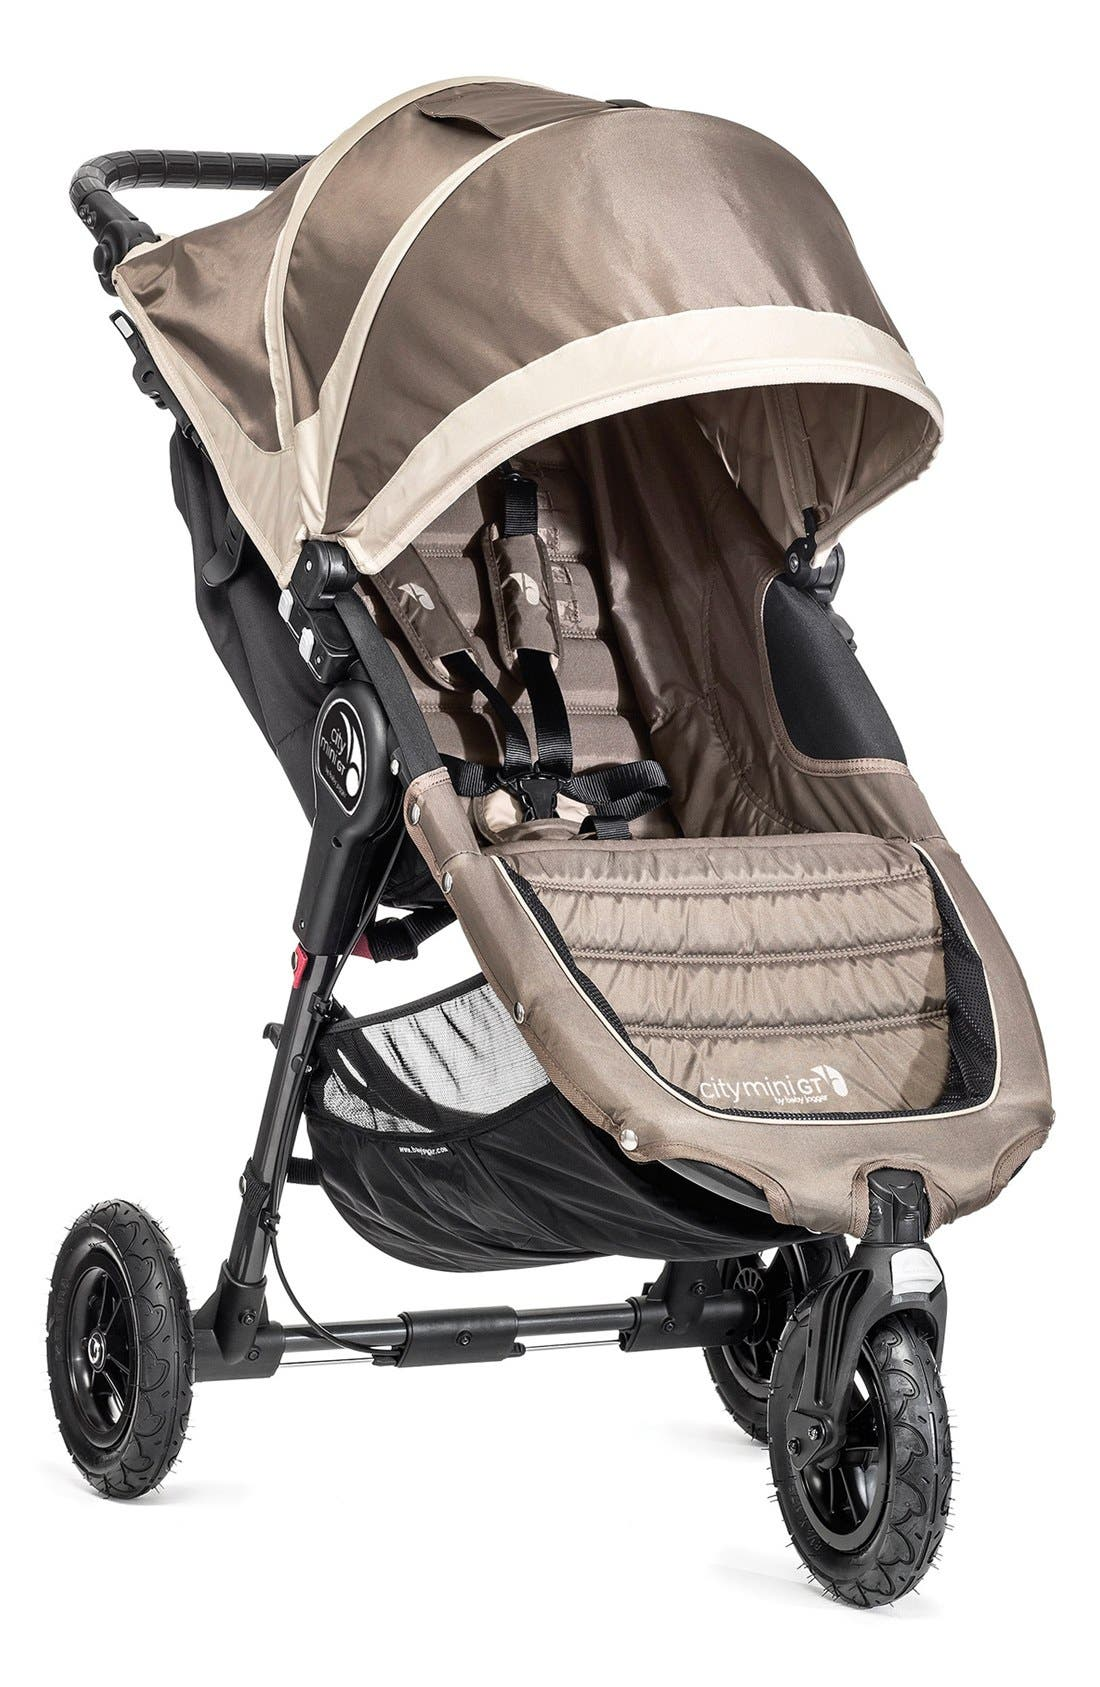 Baby Jogger Stroller & Accessories